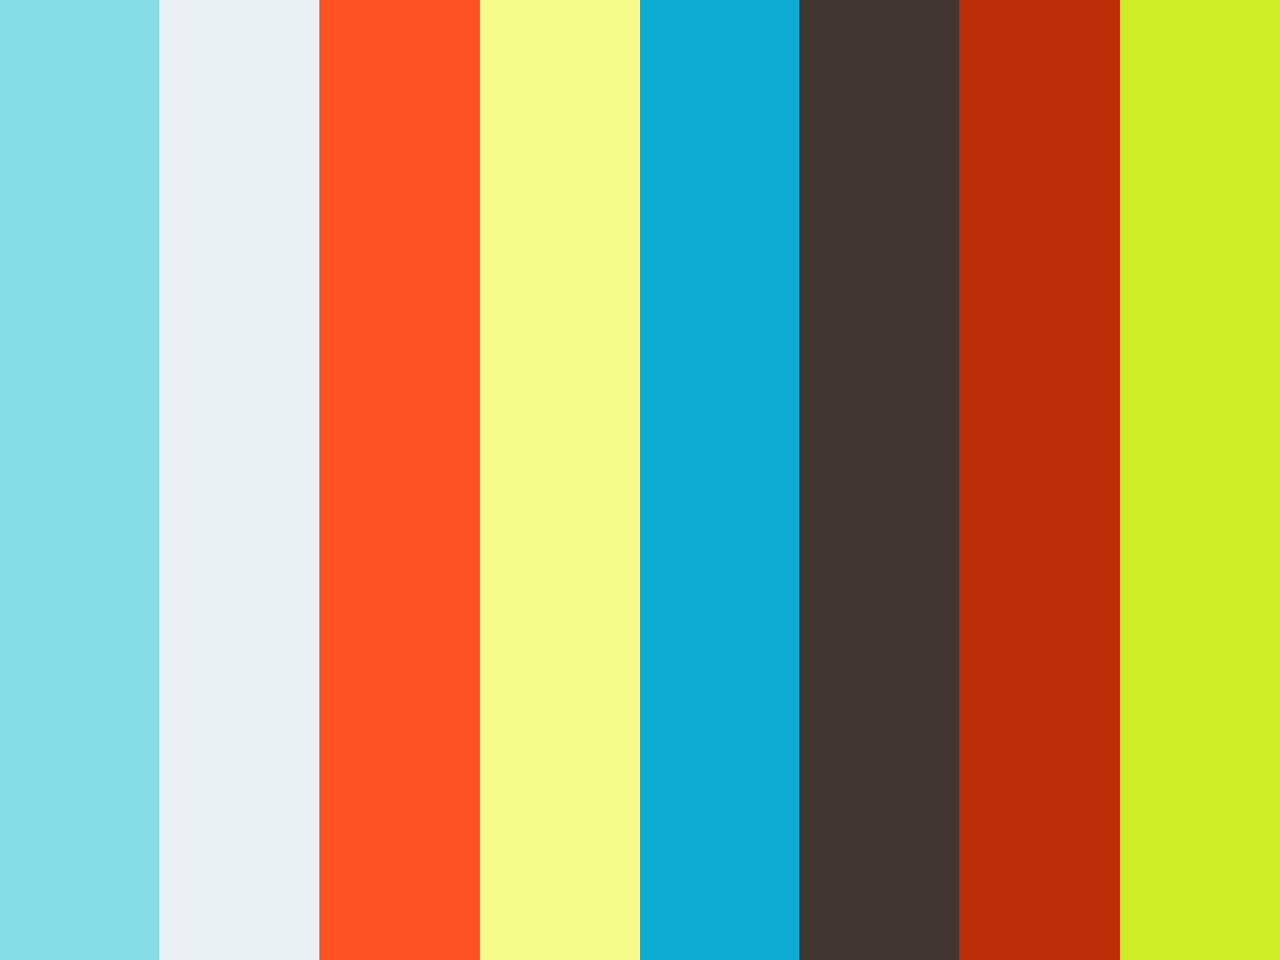 STEFF DA CAMPO - HOW IT GOES [RELEASE 12 SEPT 2016]